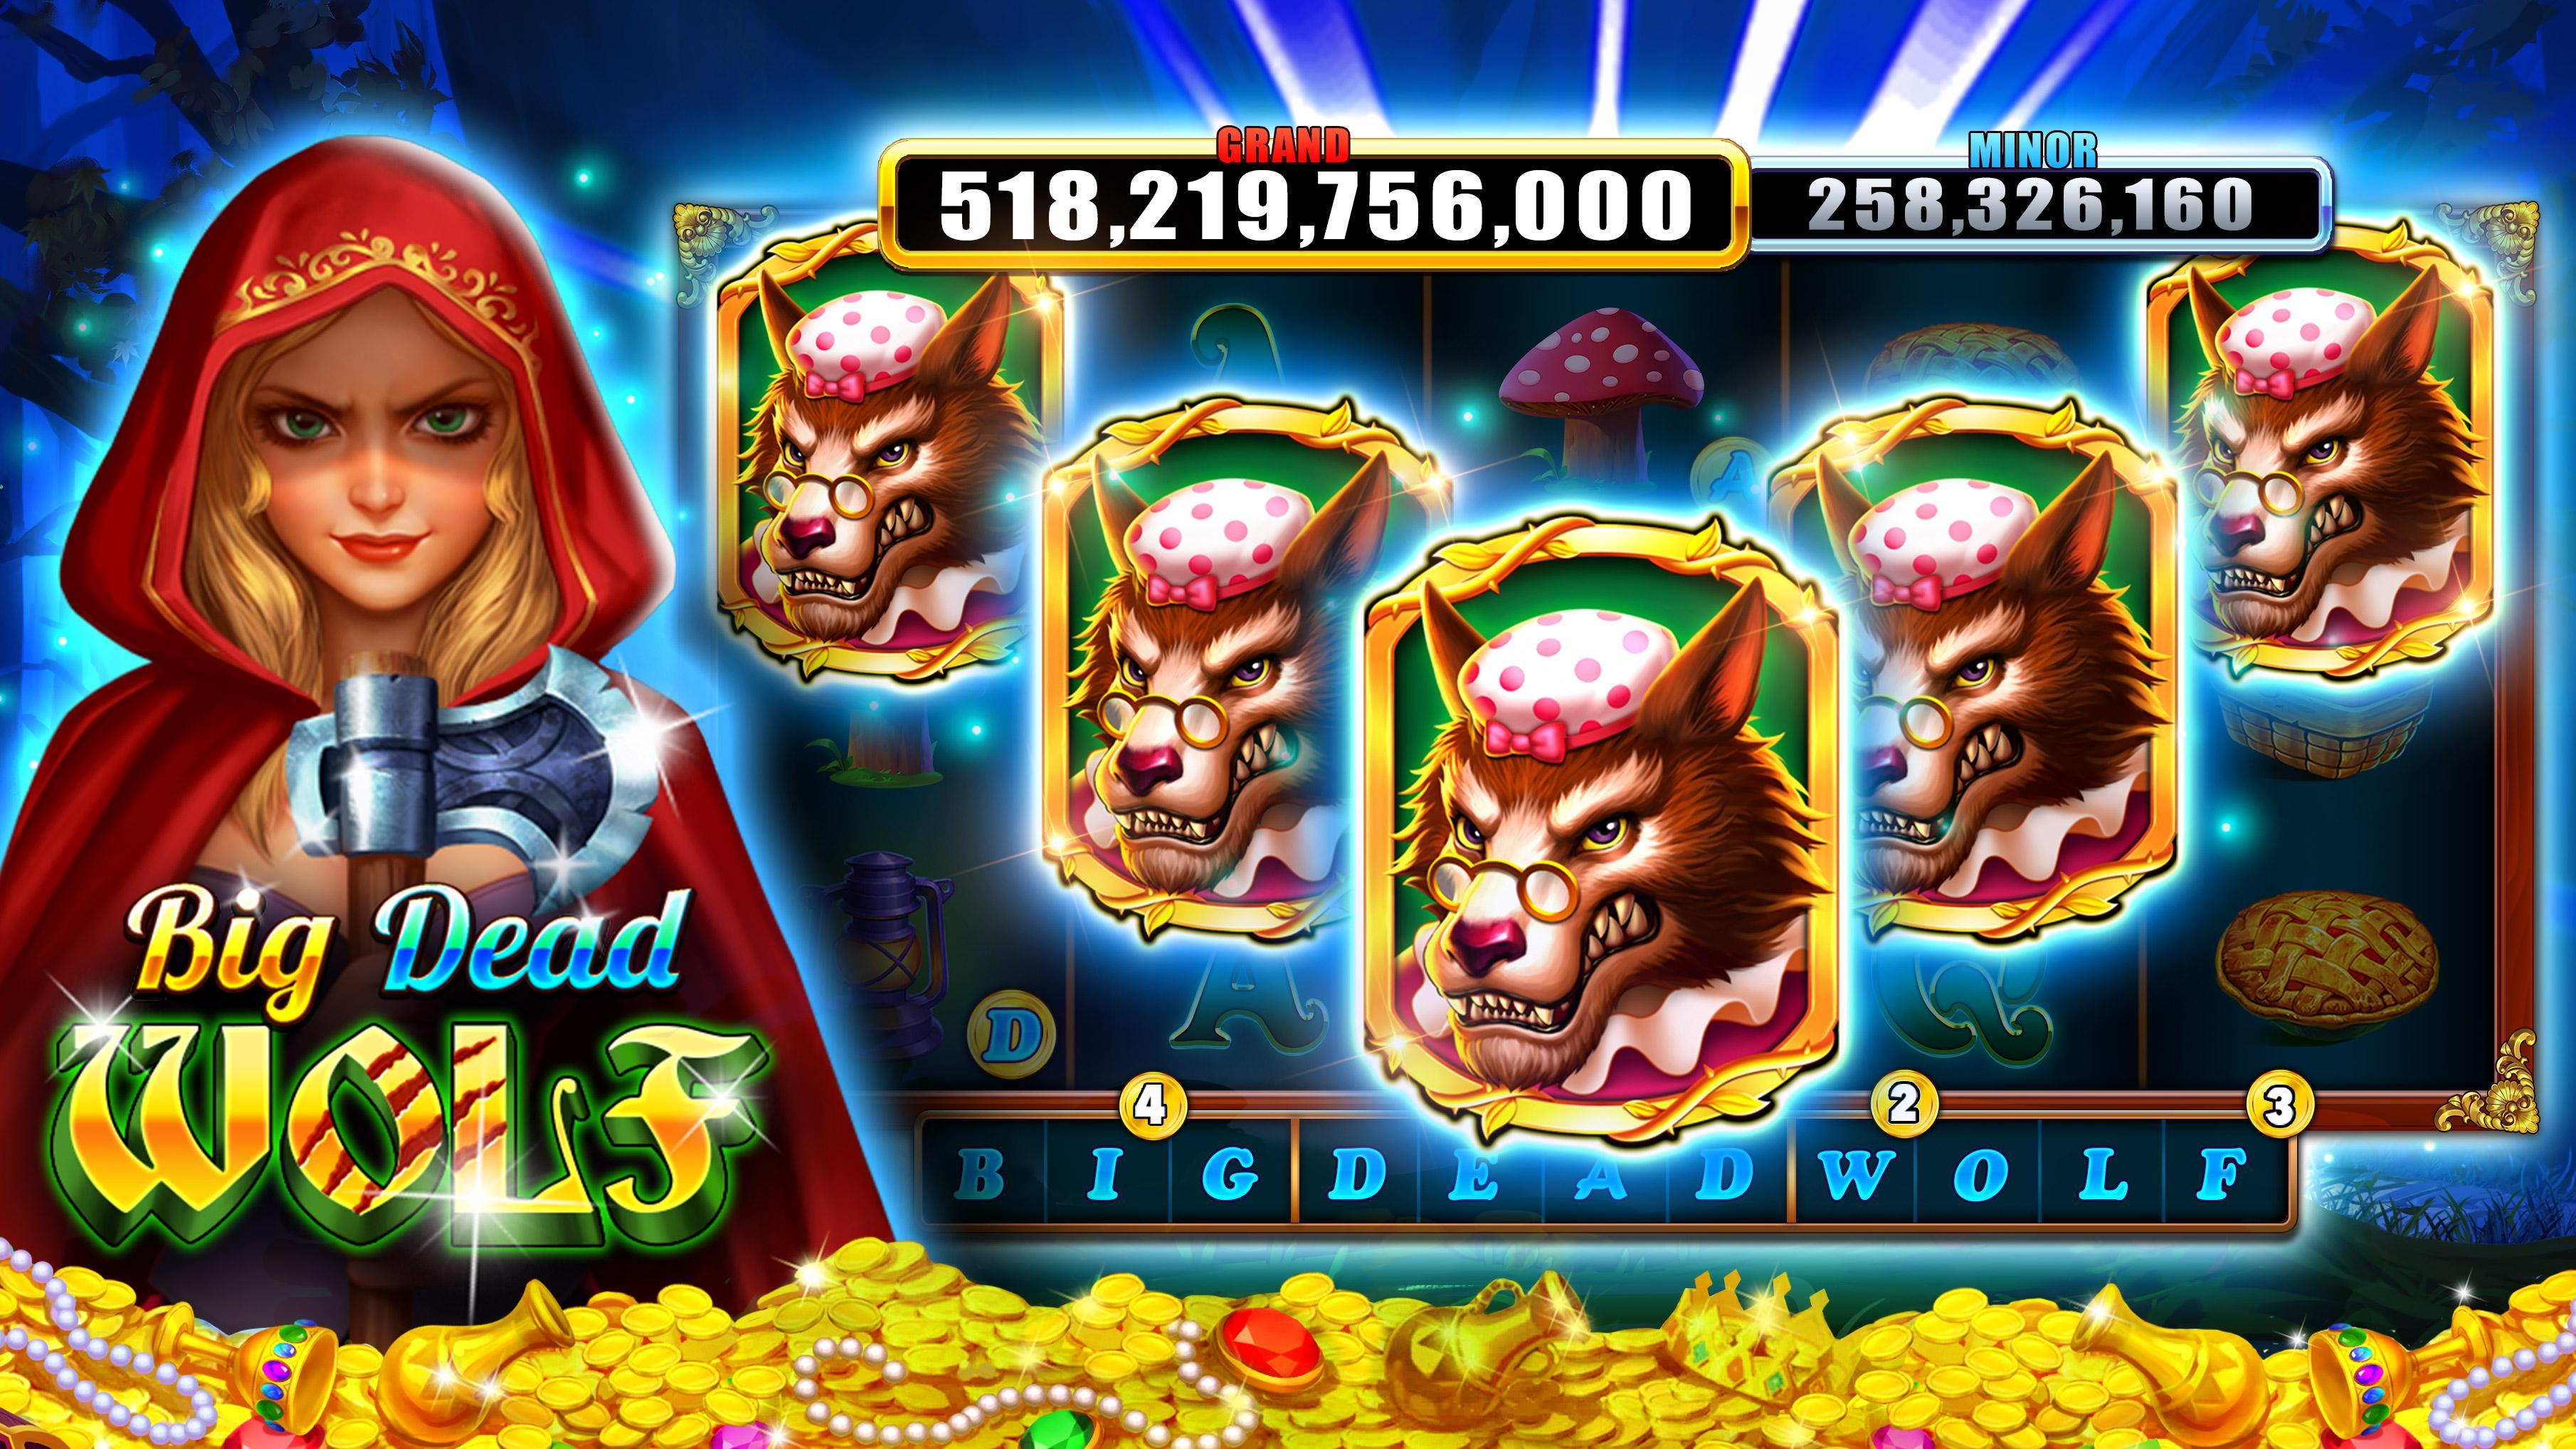 Vegas Friends - Casino Slots for Free 1.0.012 Screenshot 3